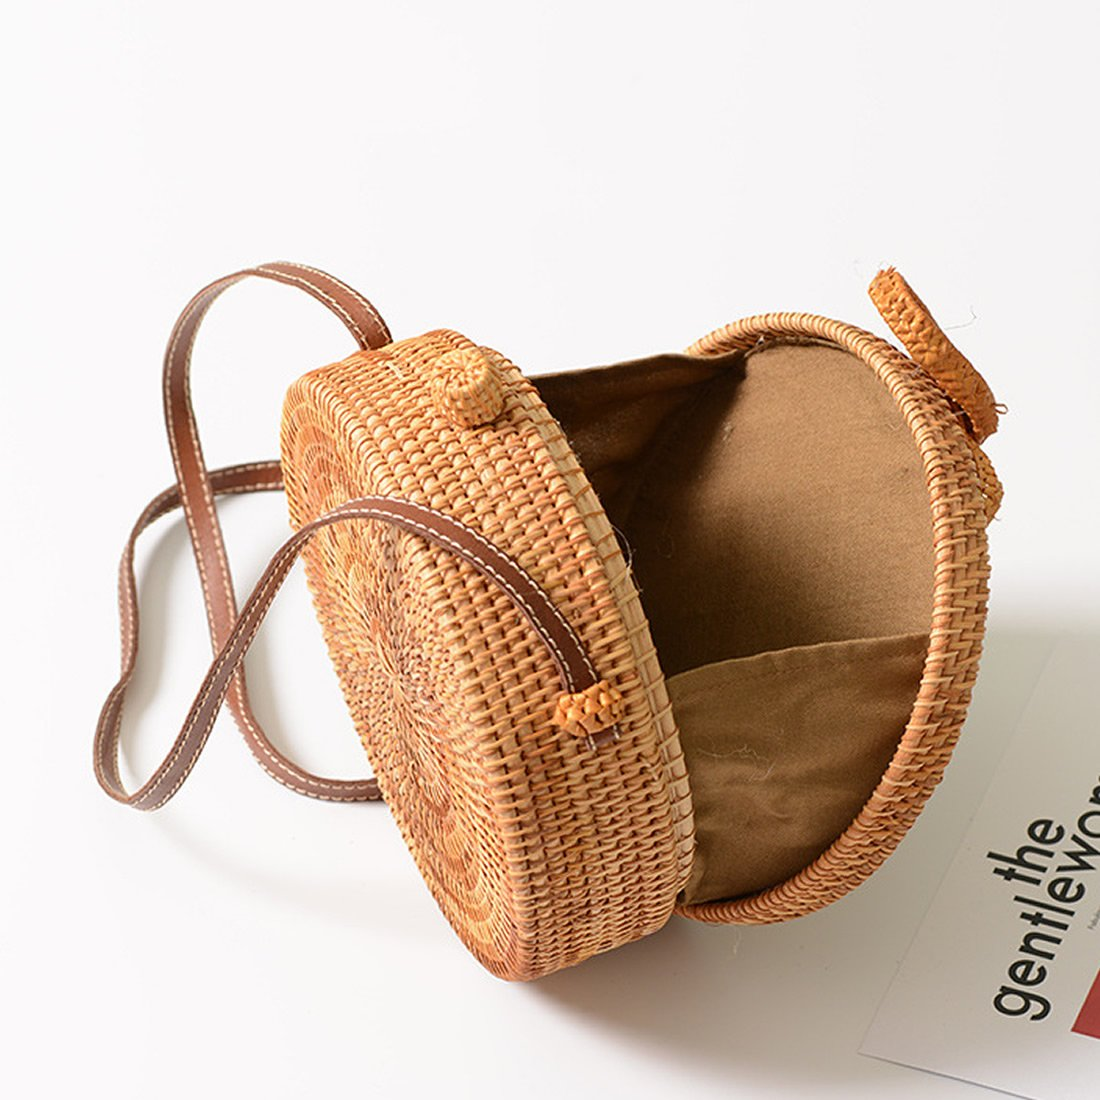 Straw Crossbody Bag, Vintage Handwoven Round Ata Rattan Shoulder Bag Straw Purse with Bow Clasp